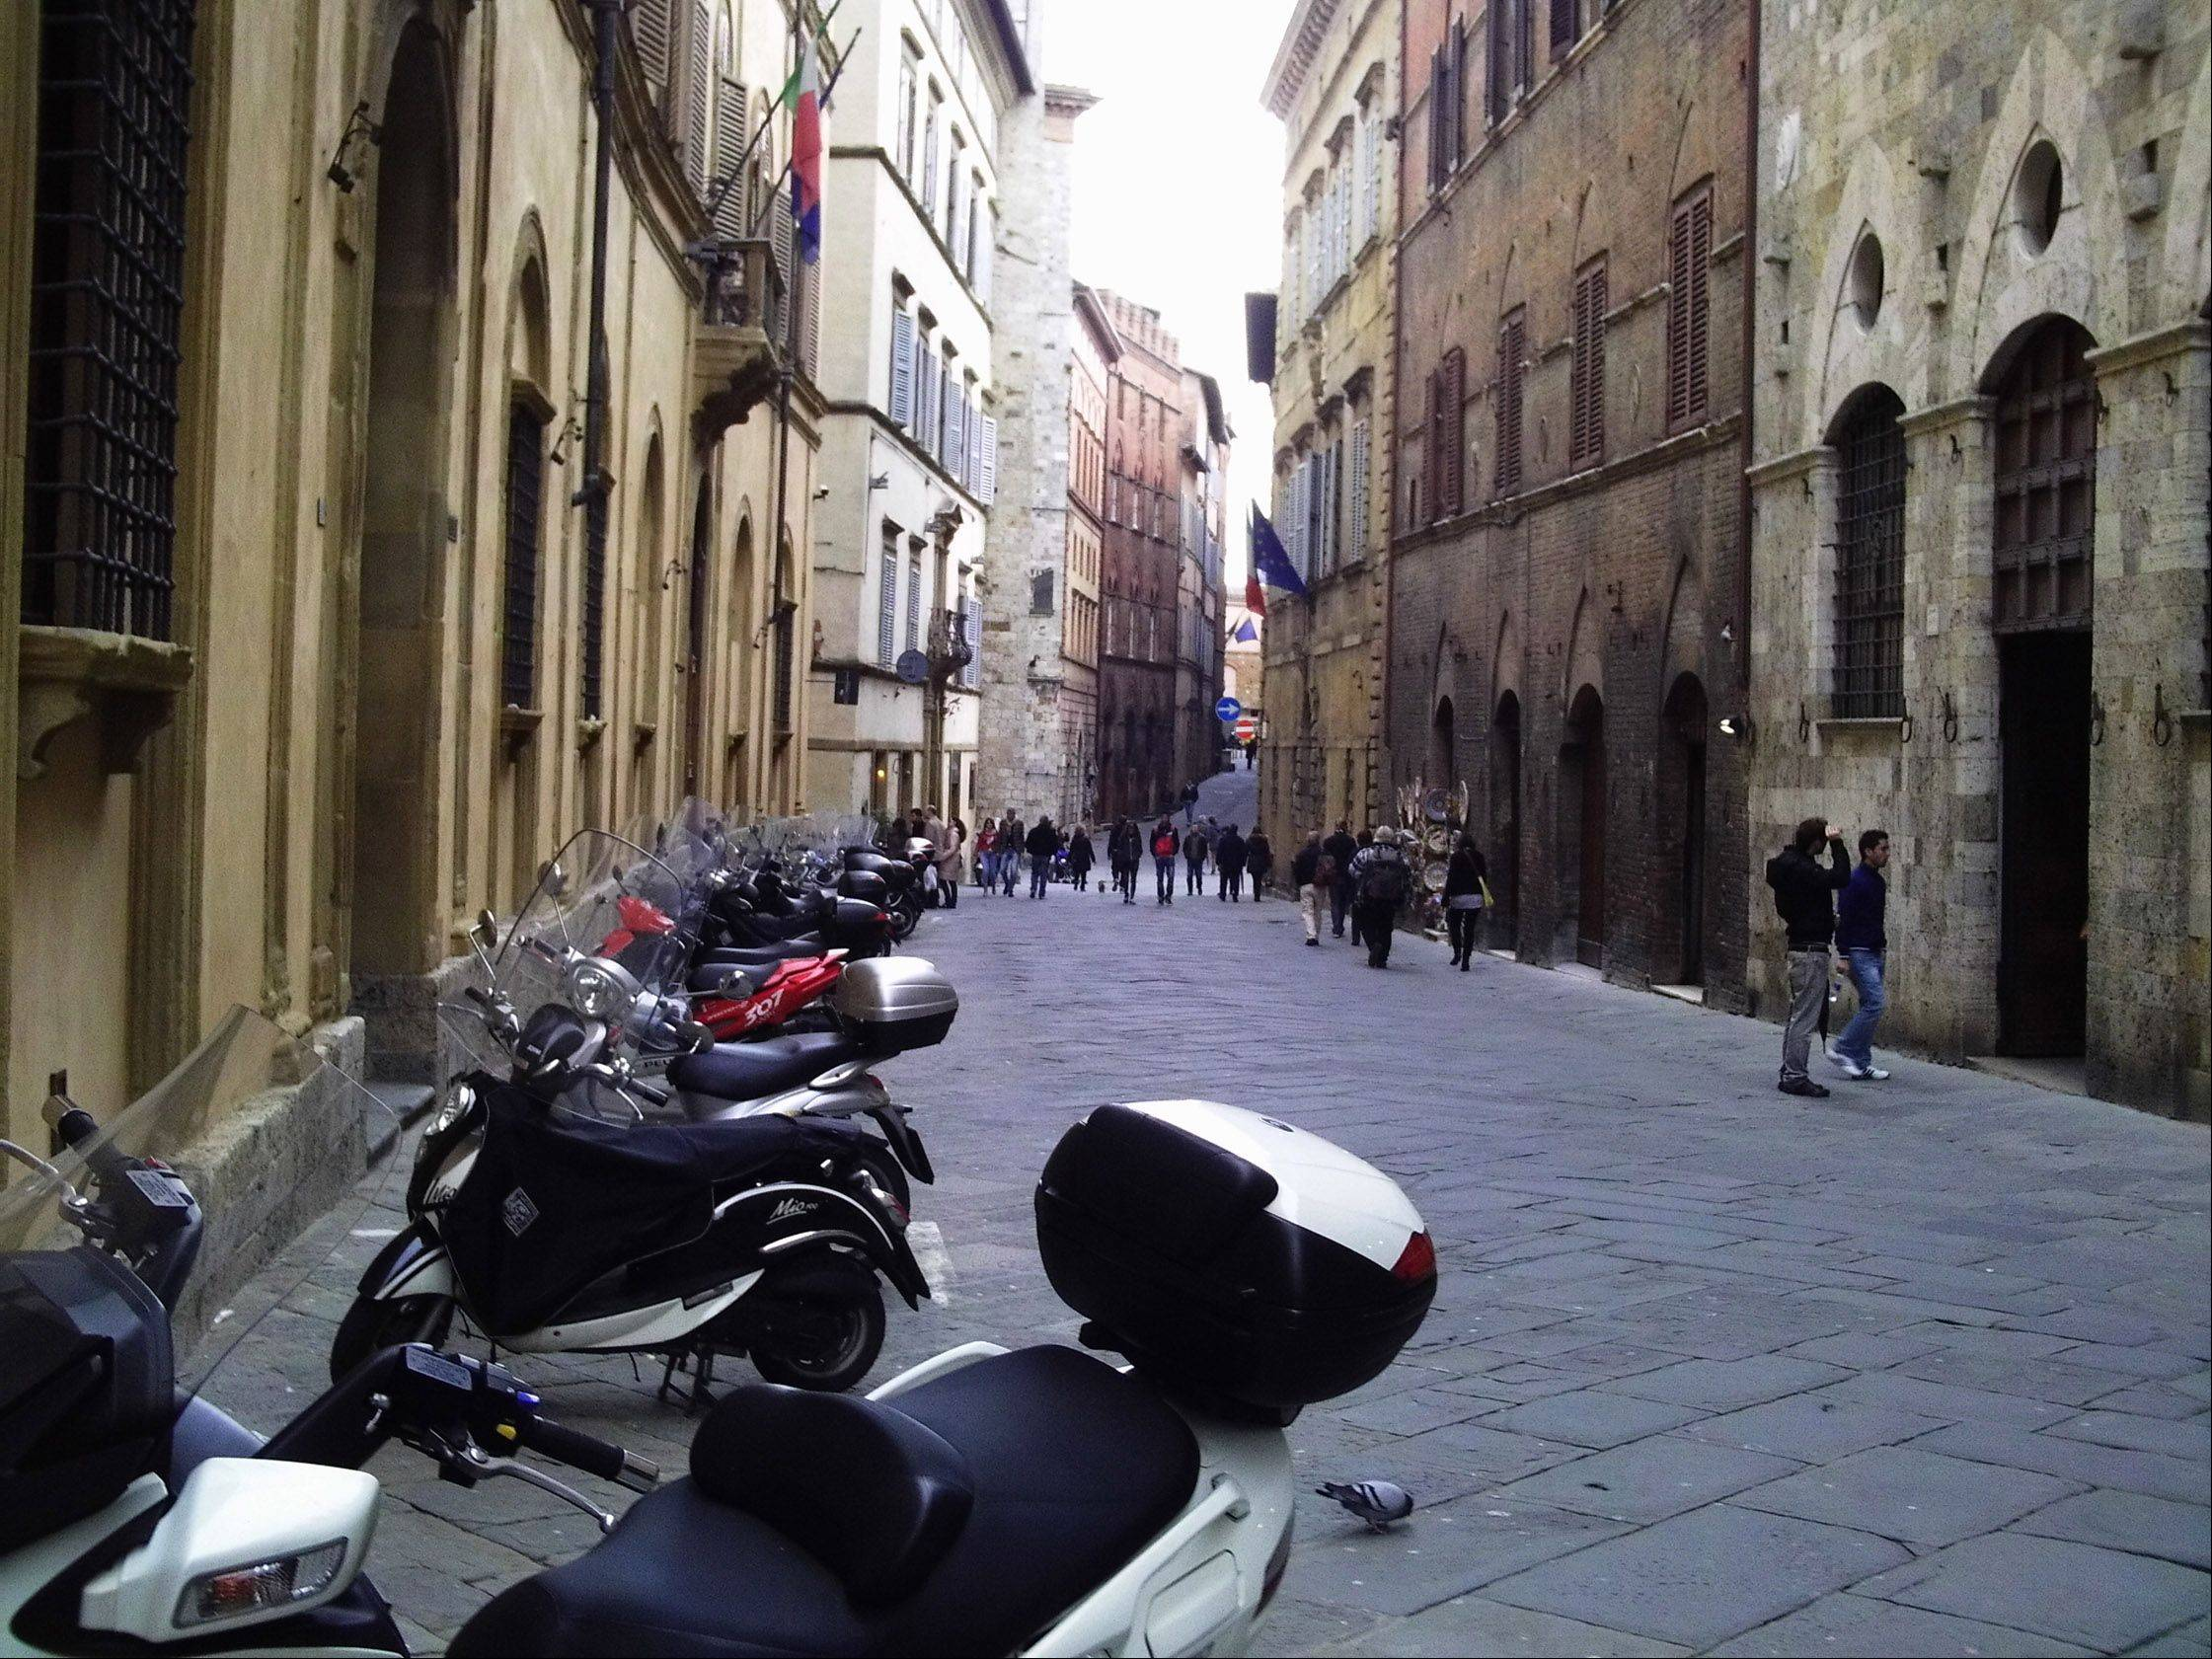 Scooters line a bricked street in Siena, Italy. The choir of Lake Zurich High School visited Italy in March and performed at the Vatican.